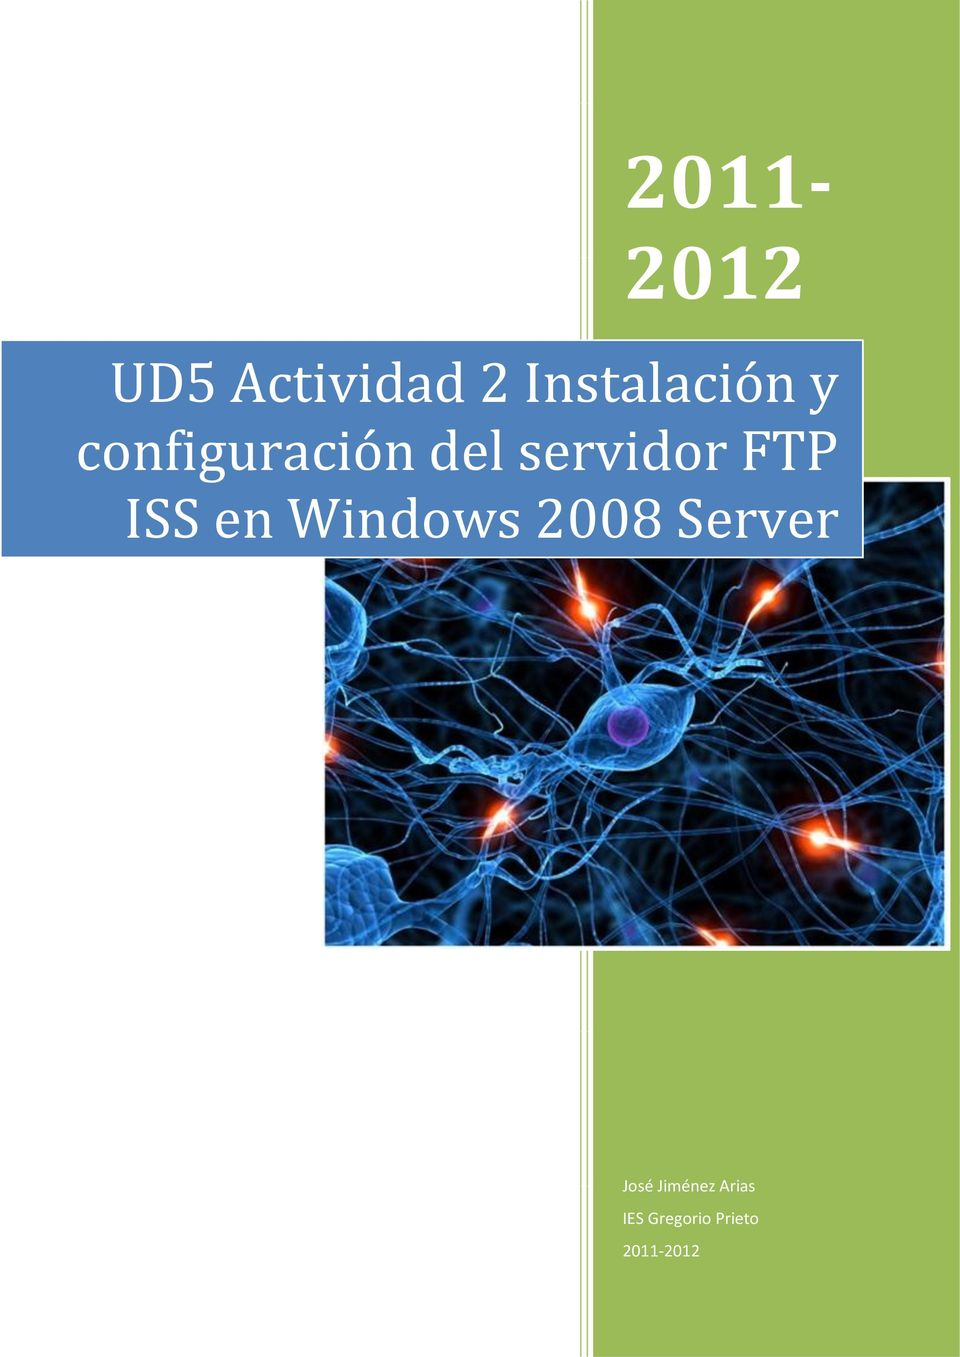 servidor FTP ISS en Windows 2008